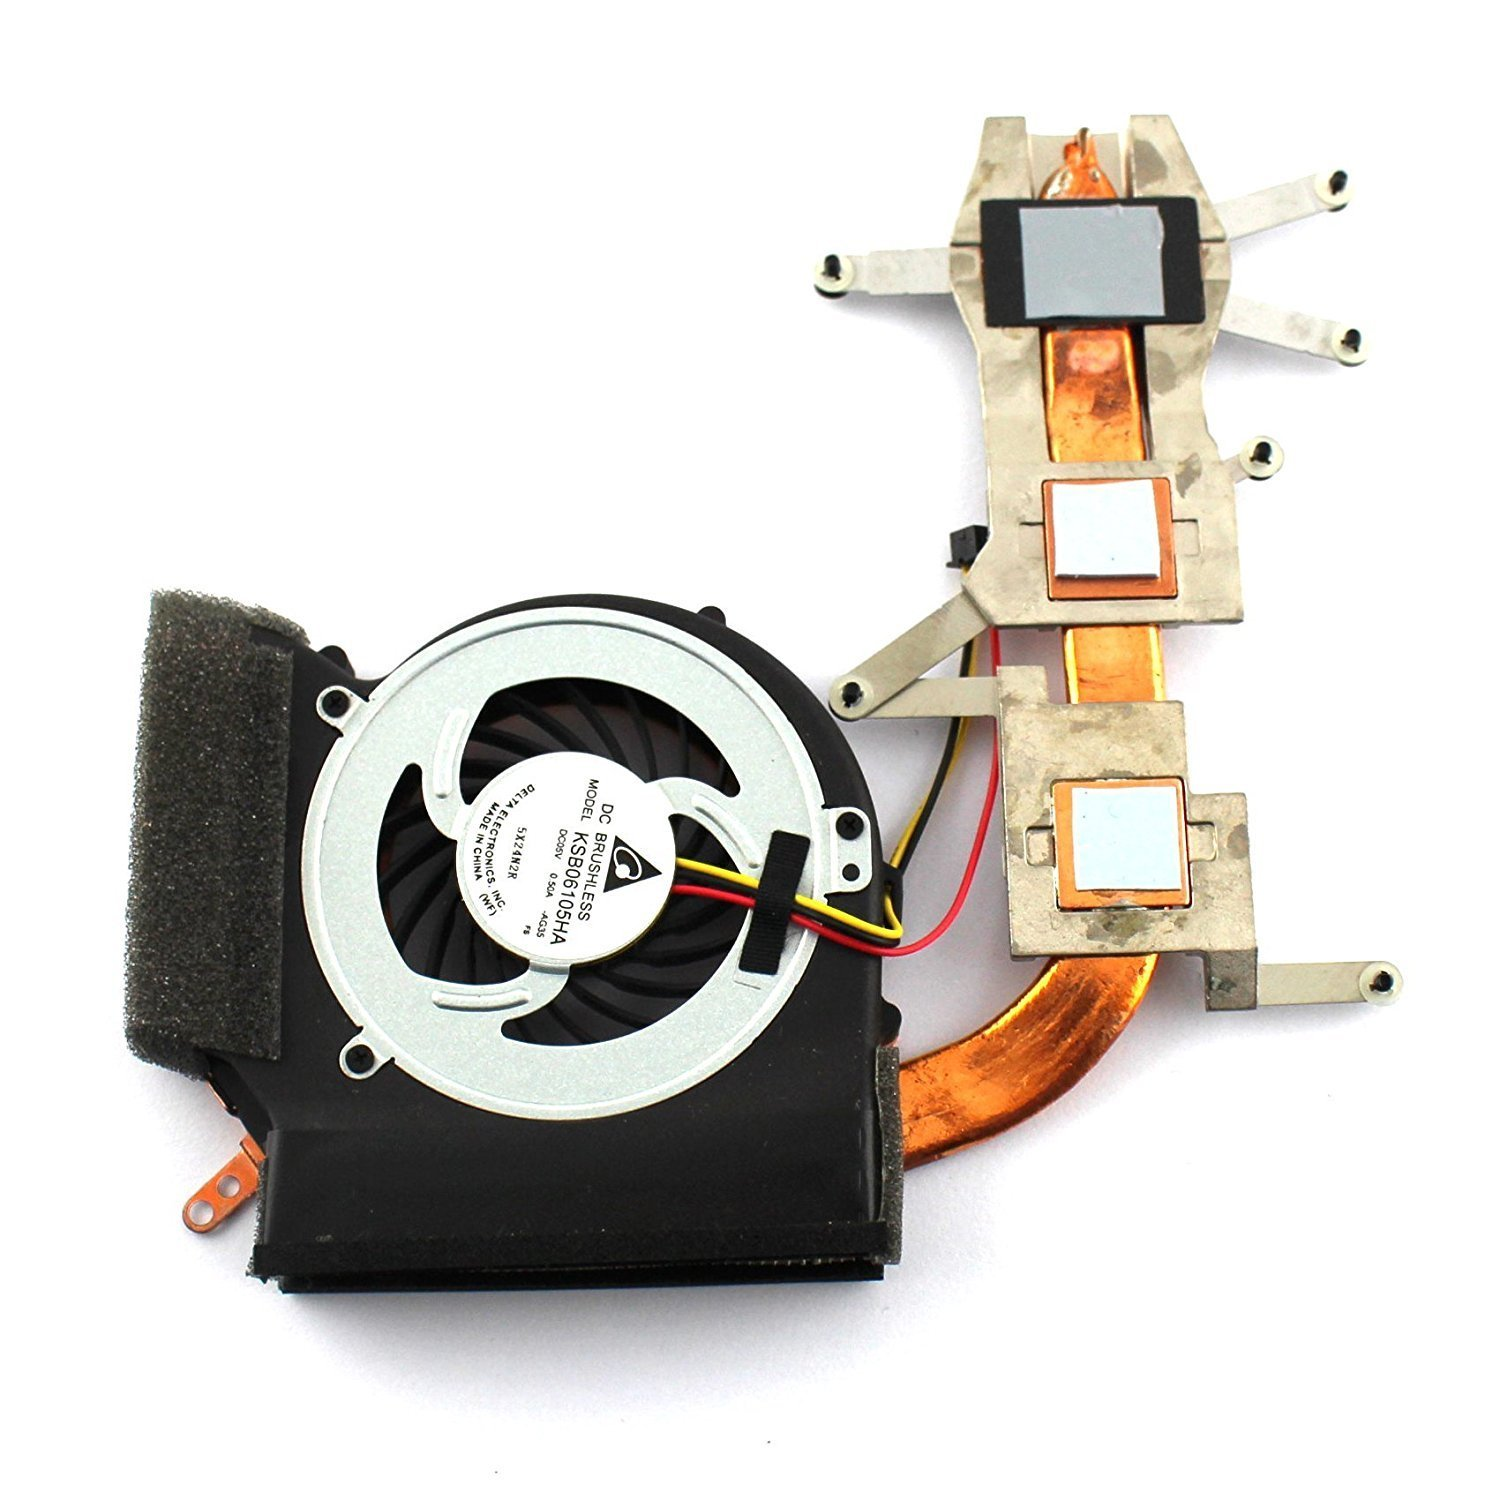 Generic CPU Cooling Fan For IBM Lenovo Thinkpad E40 E50 Series Laptop Notebook Replacement Accessories P/N:75Y6001 75Y6002